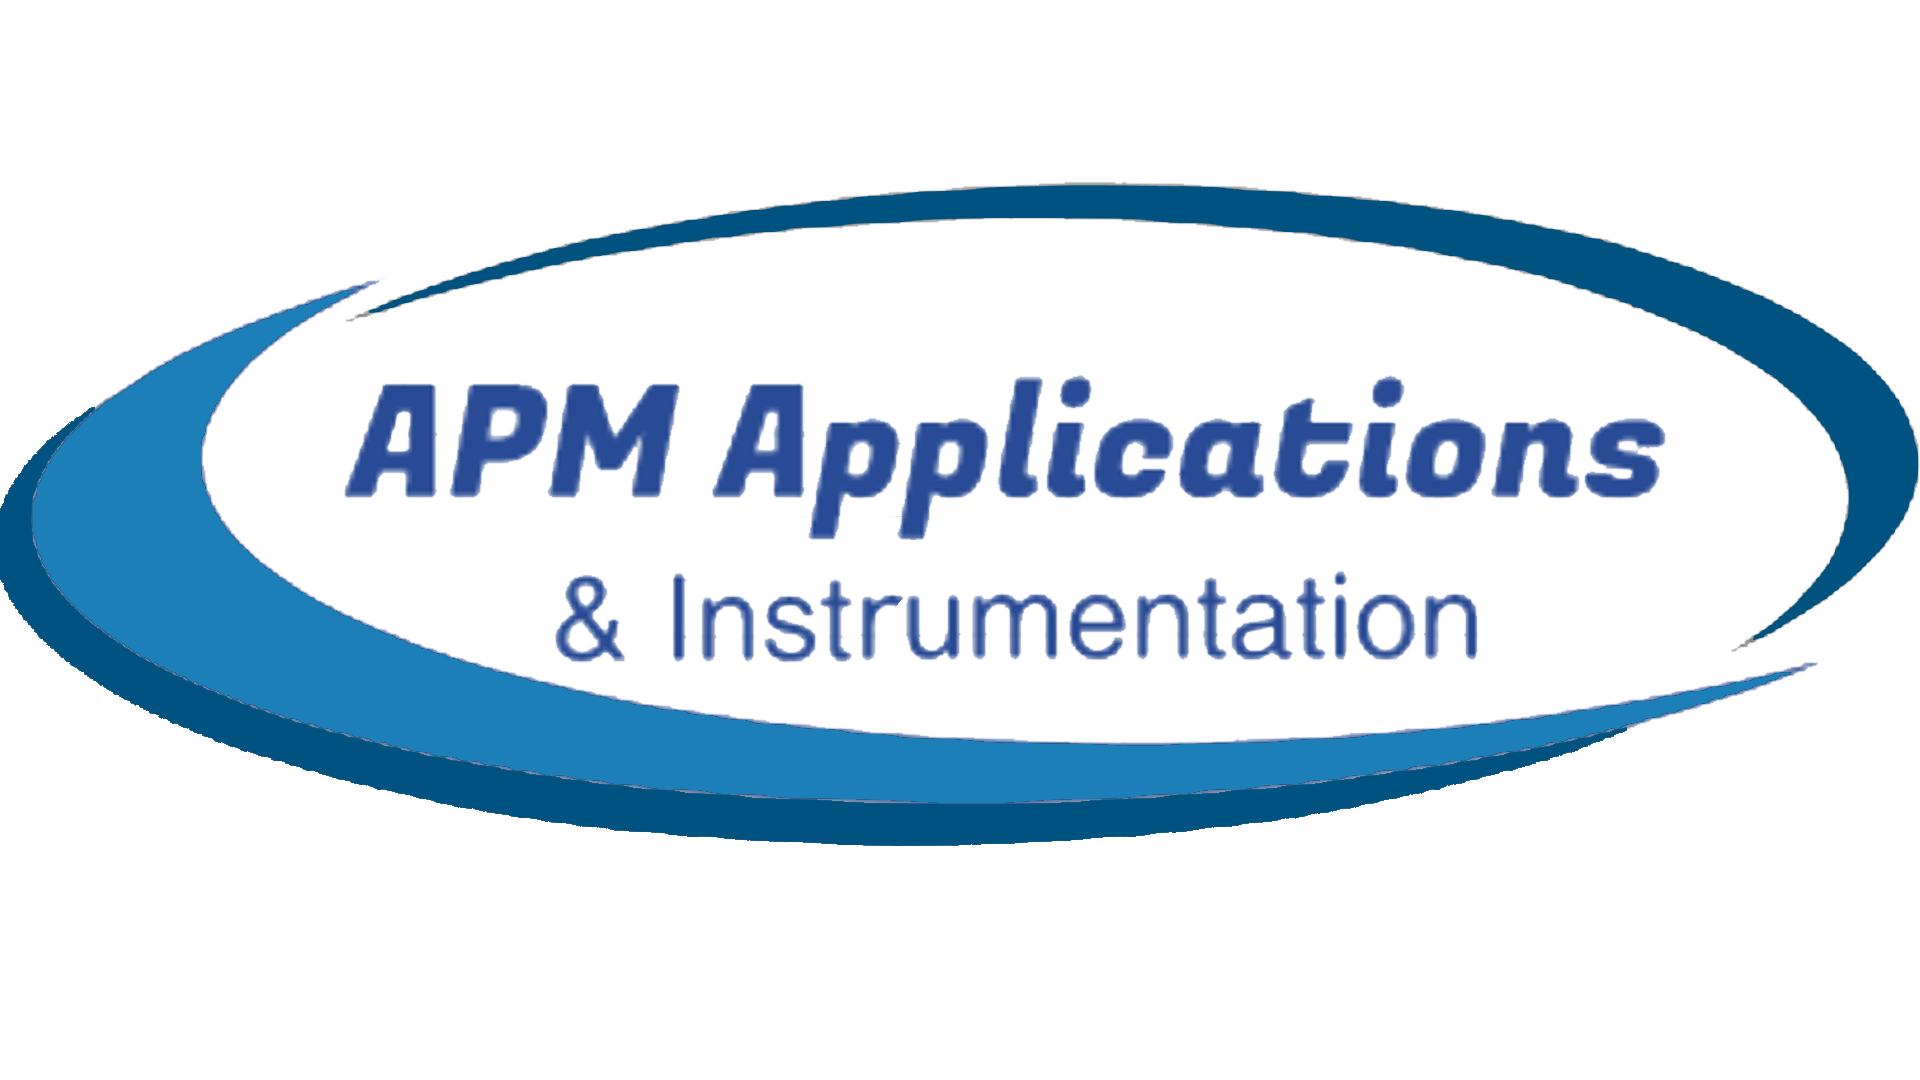 APM Applications & Instrumentation